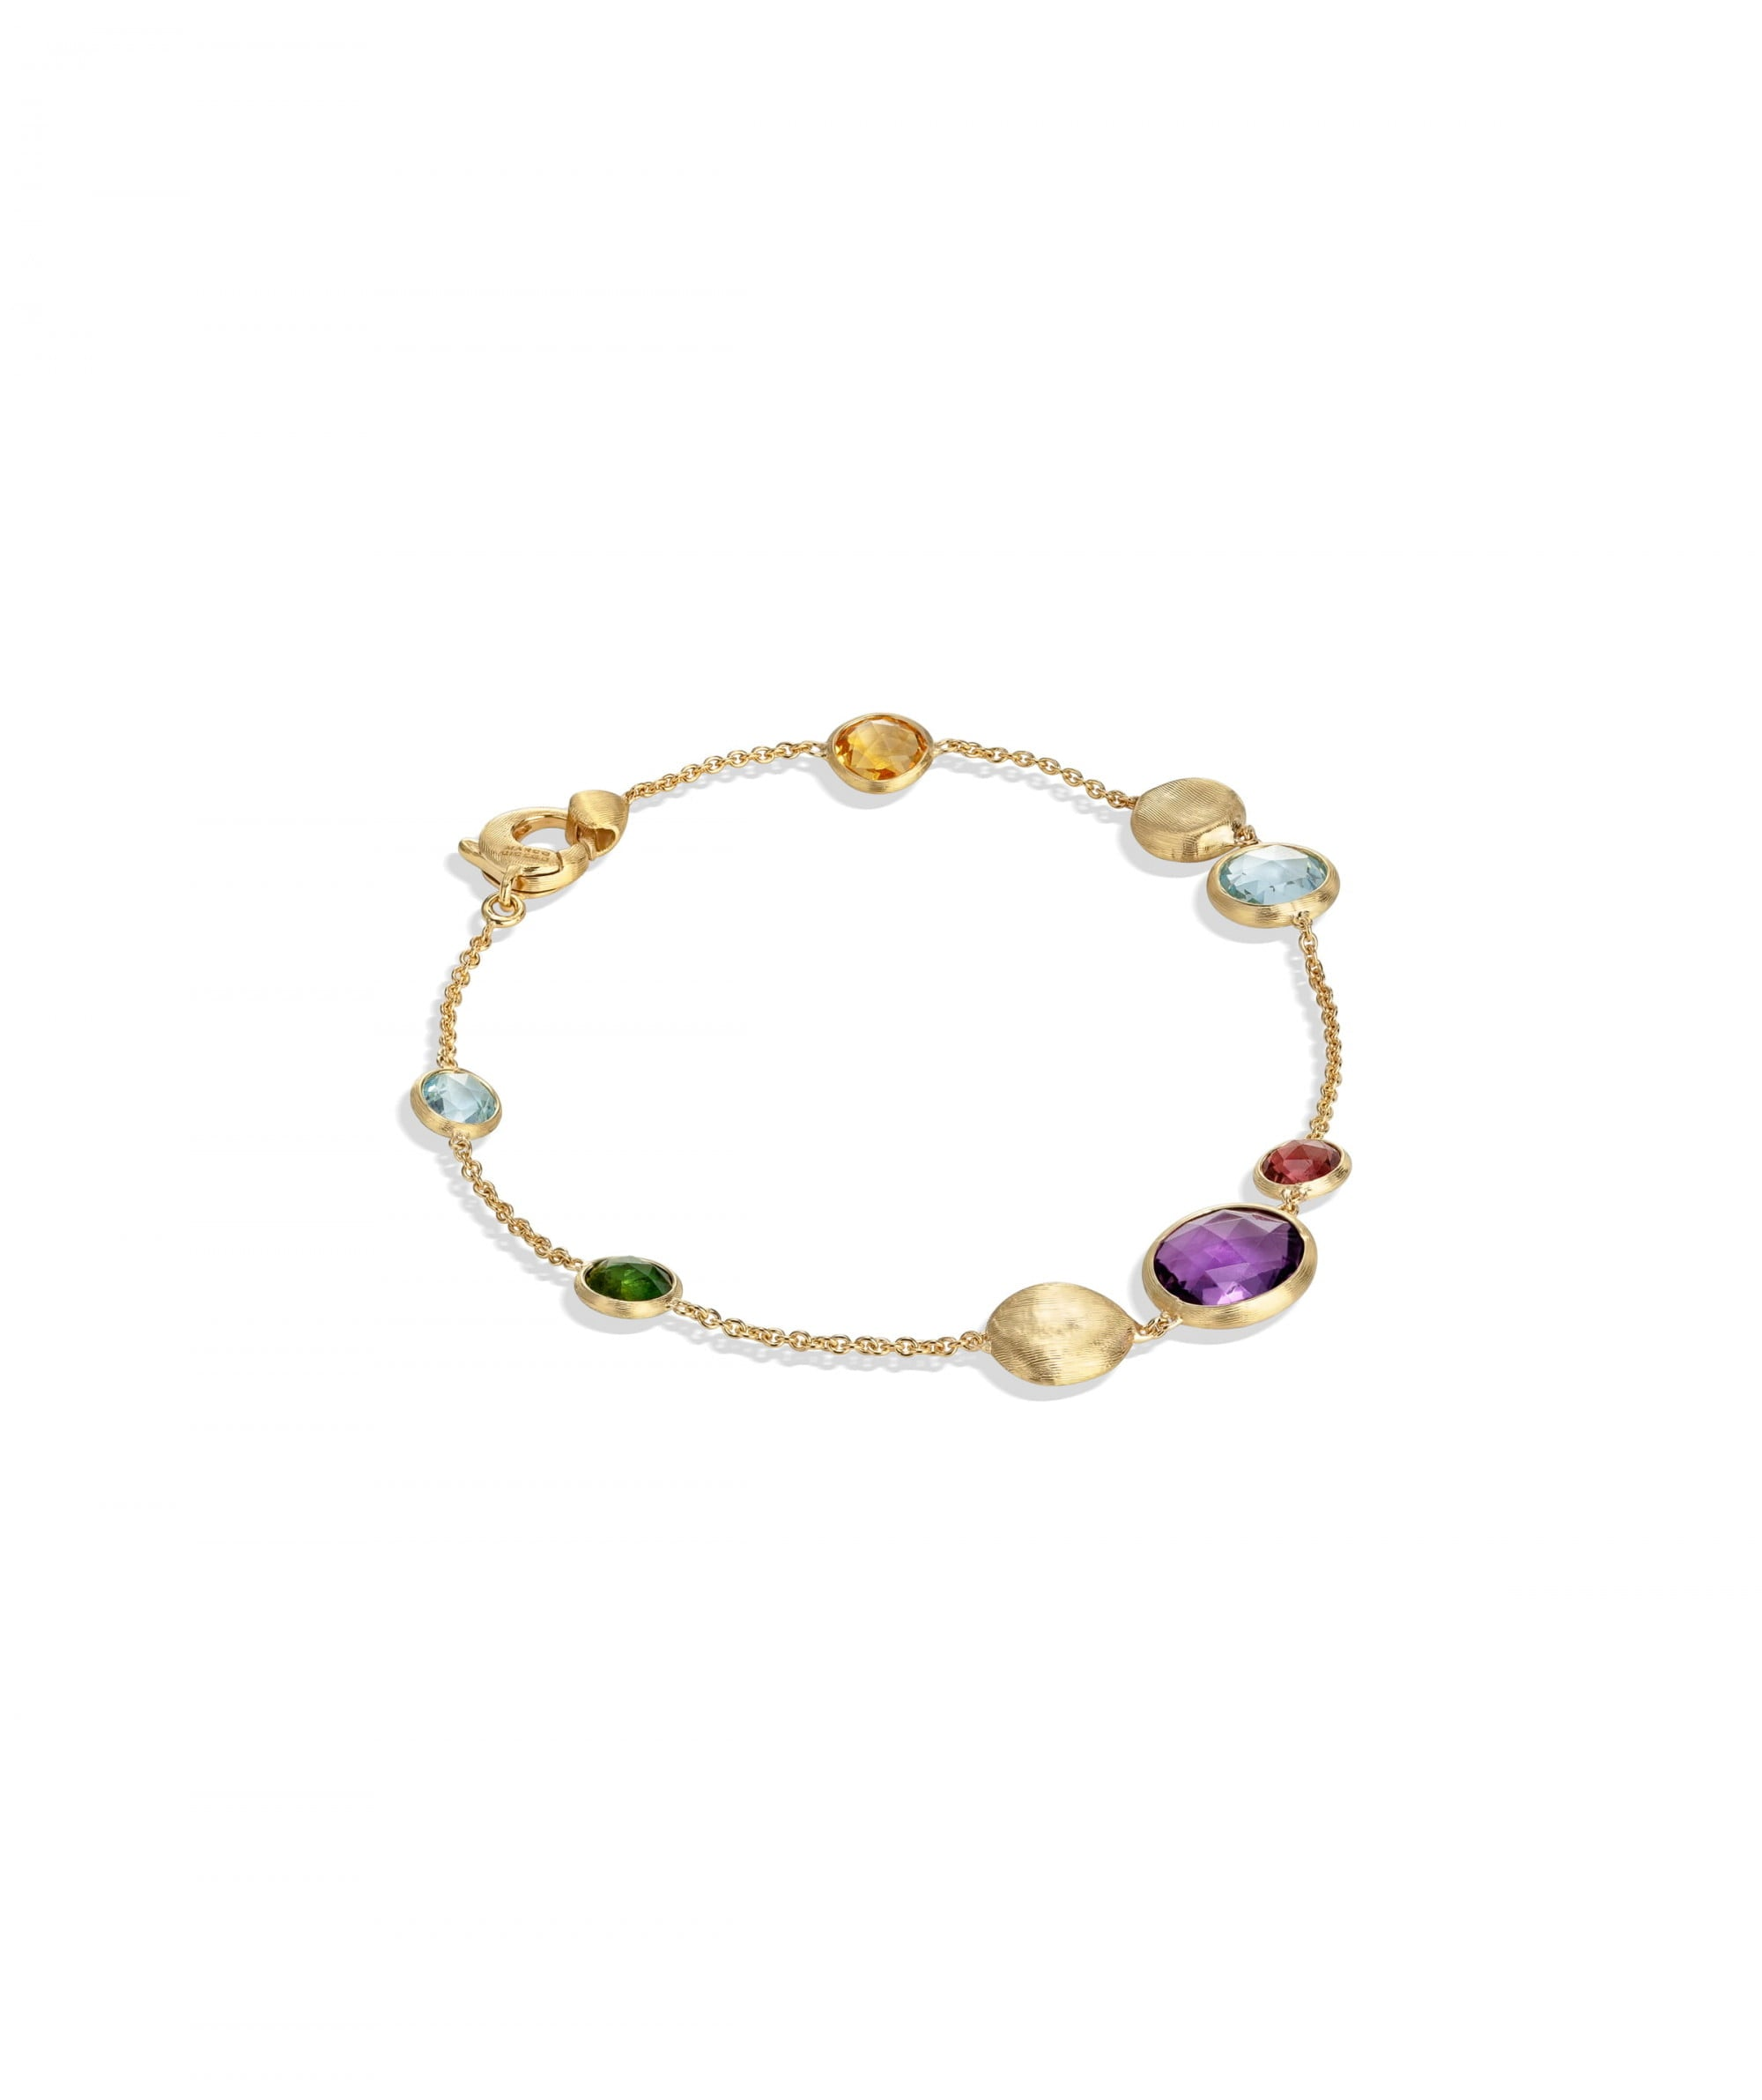 Jaipur Light Colour Bracelet in 18k Yellow Gold with Mixed Gemstones - Orsini Jewellers NZ